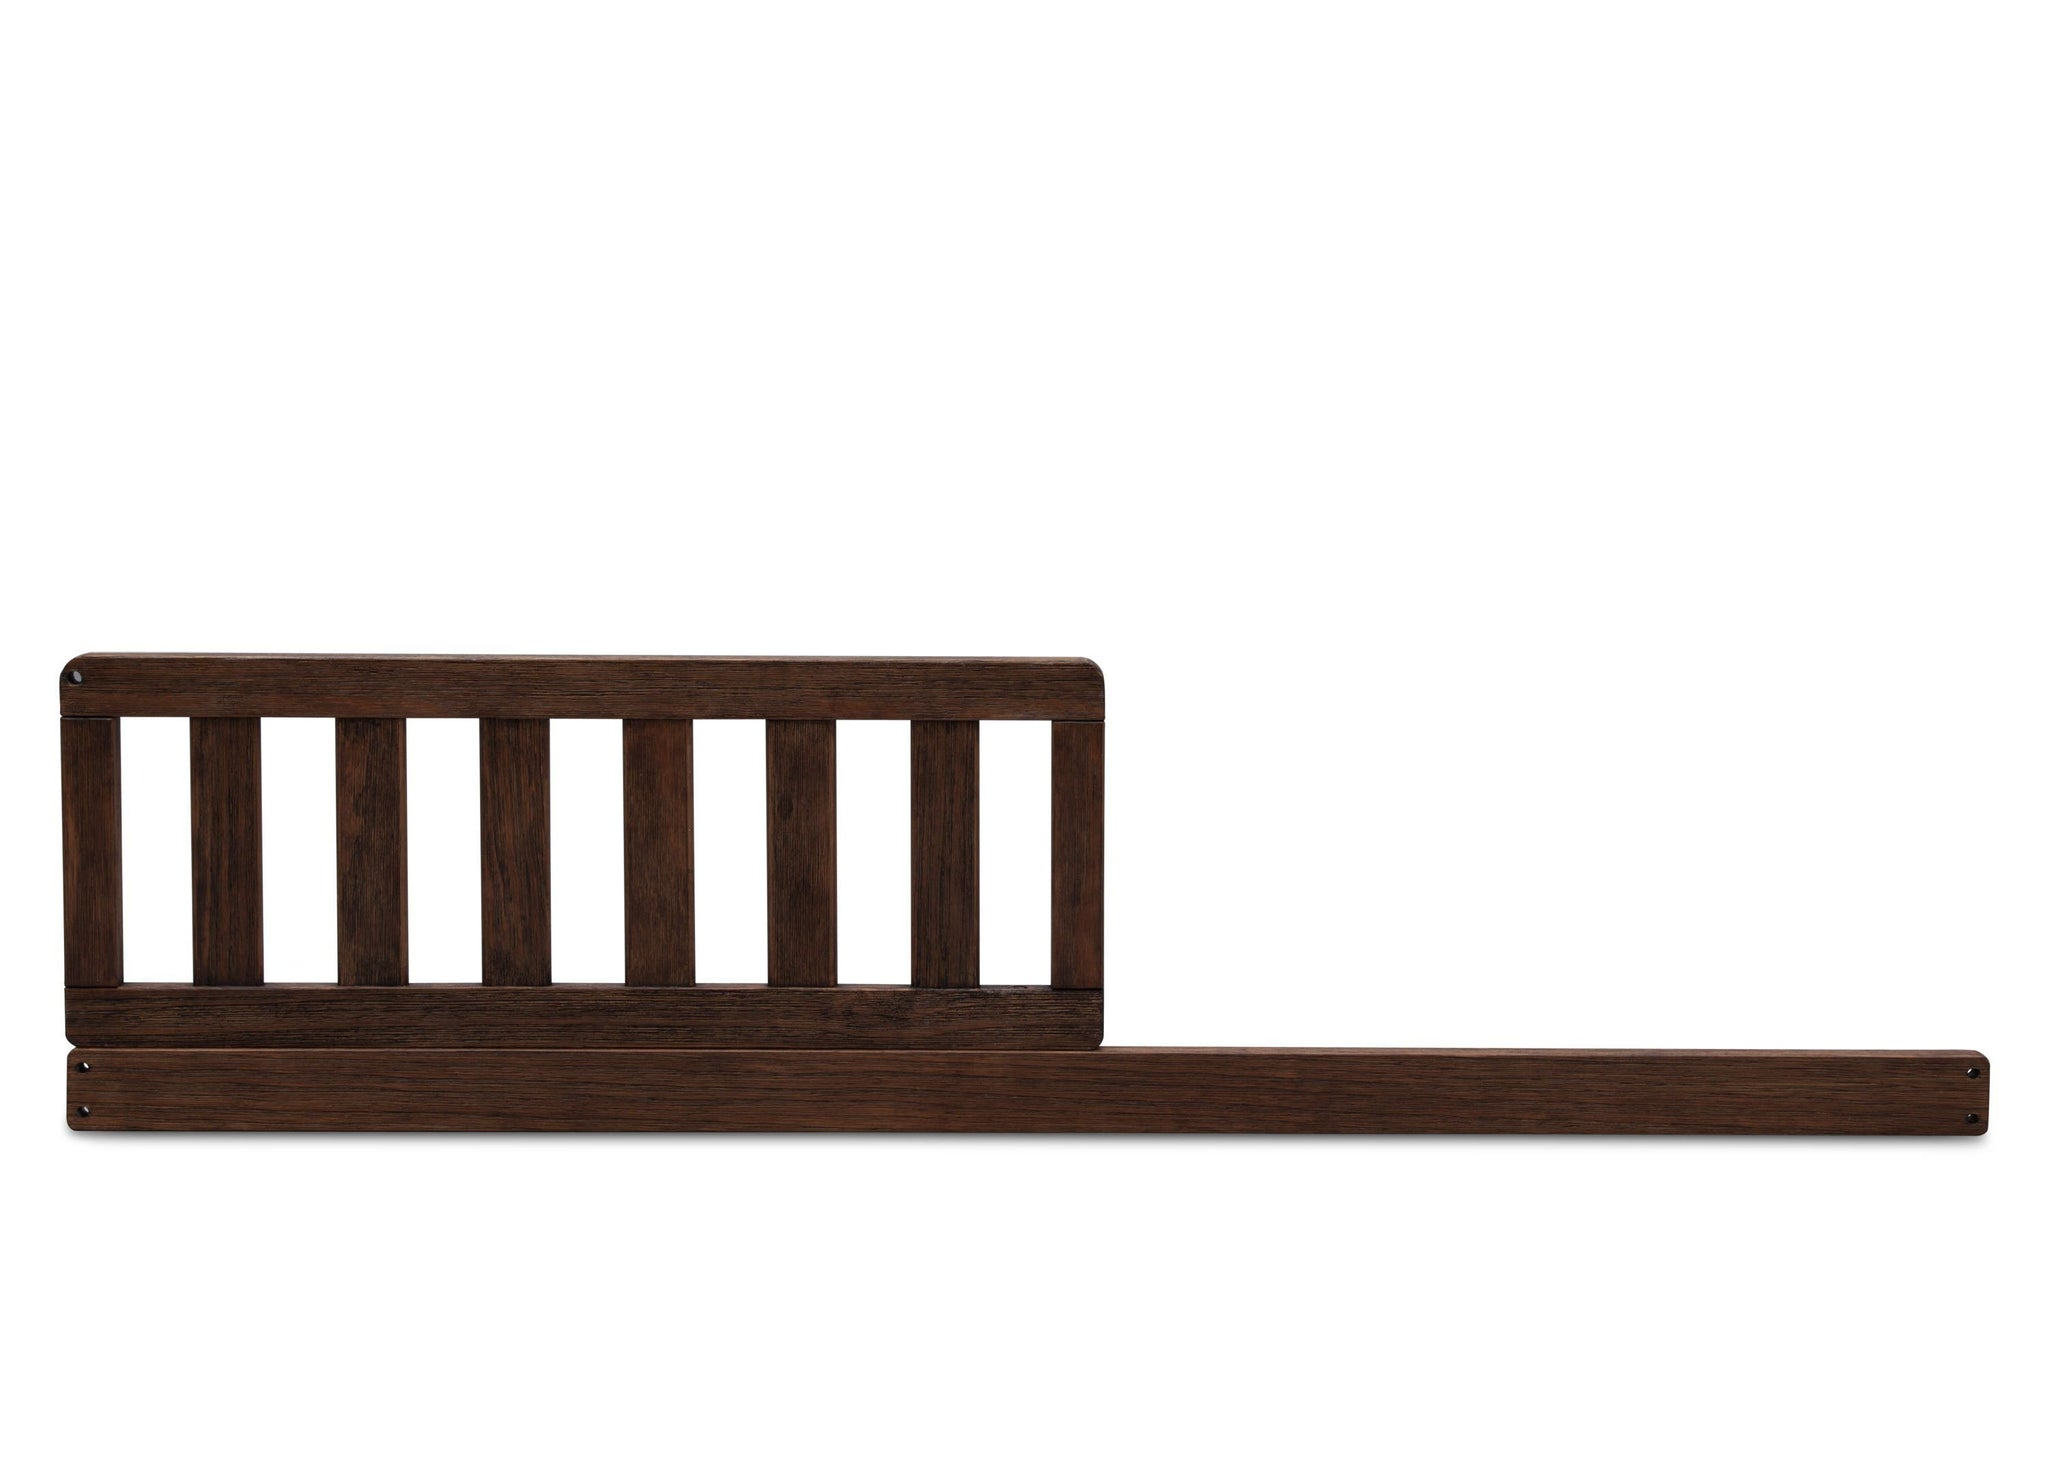 Serta Daybed/Toddler Guardrail Kit (703725) Rustic Oak (229ST) Front View c0c